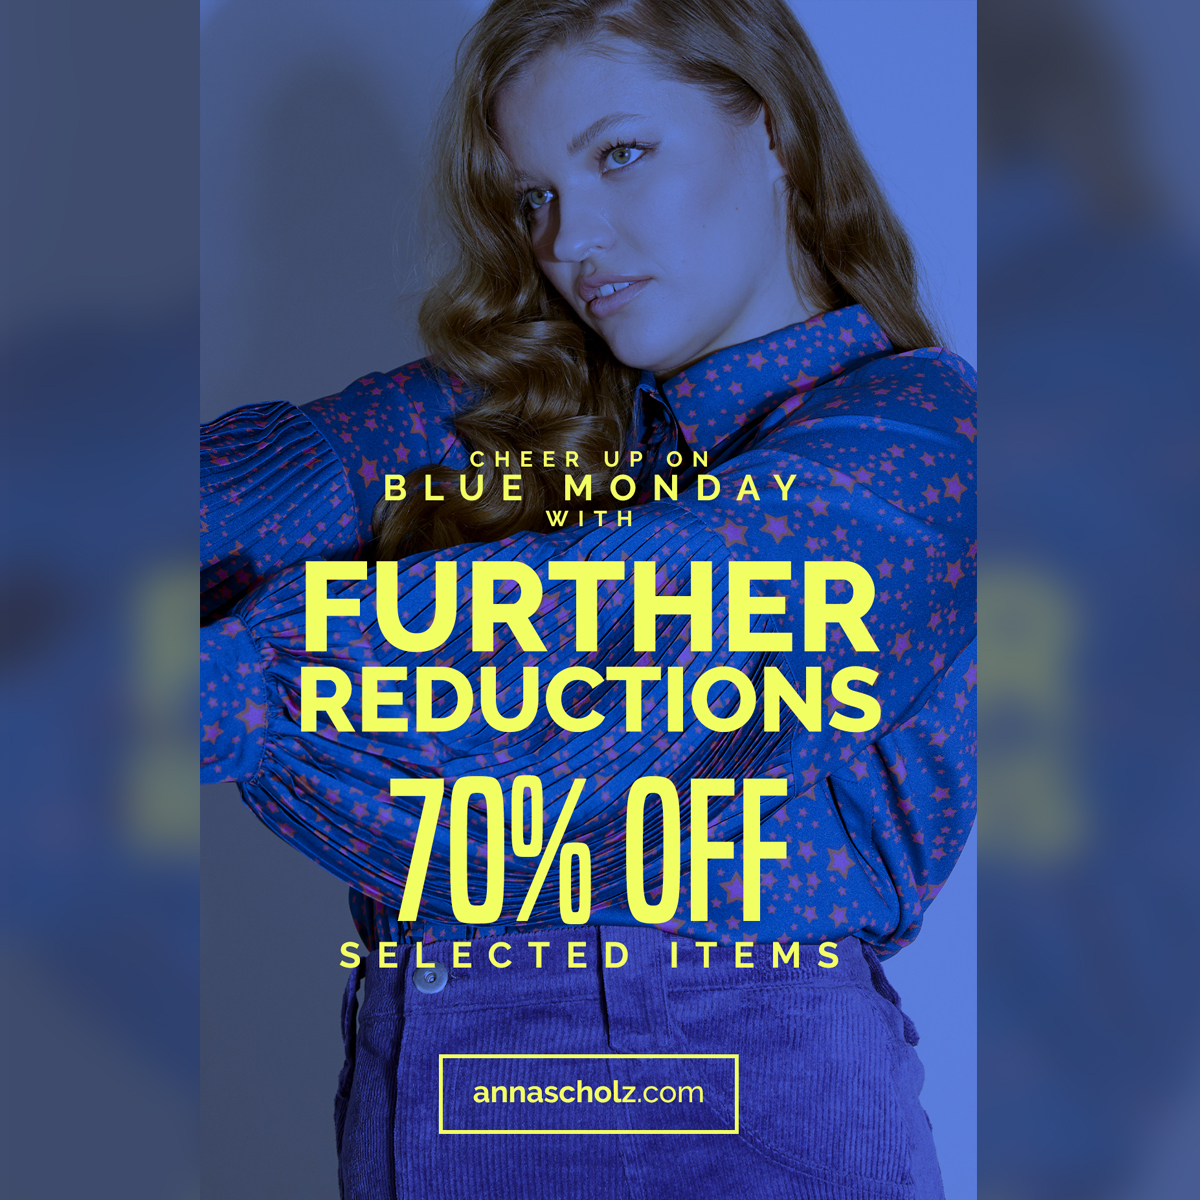 test Twitter Media - Blue monday further reductions at https://t.co/kwh8VxU6Zt #plussize #plussizefashion #annascholz https://t.co/uWWpZK6yZU